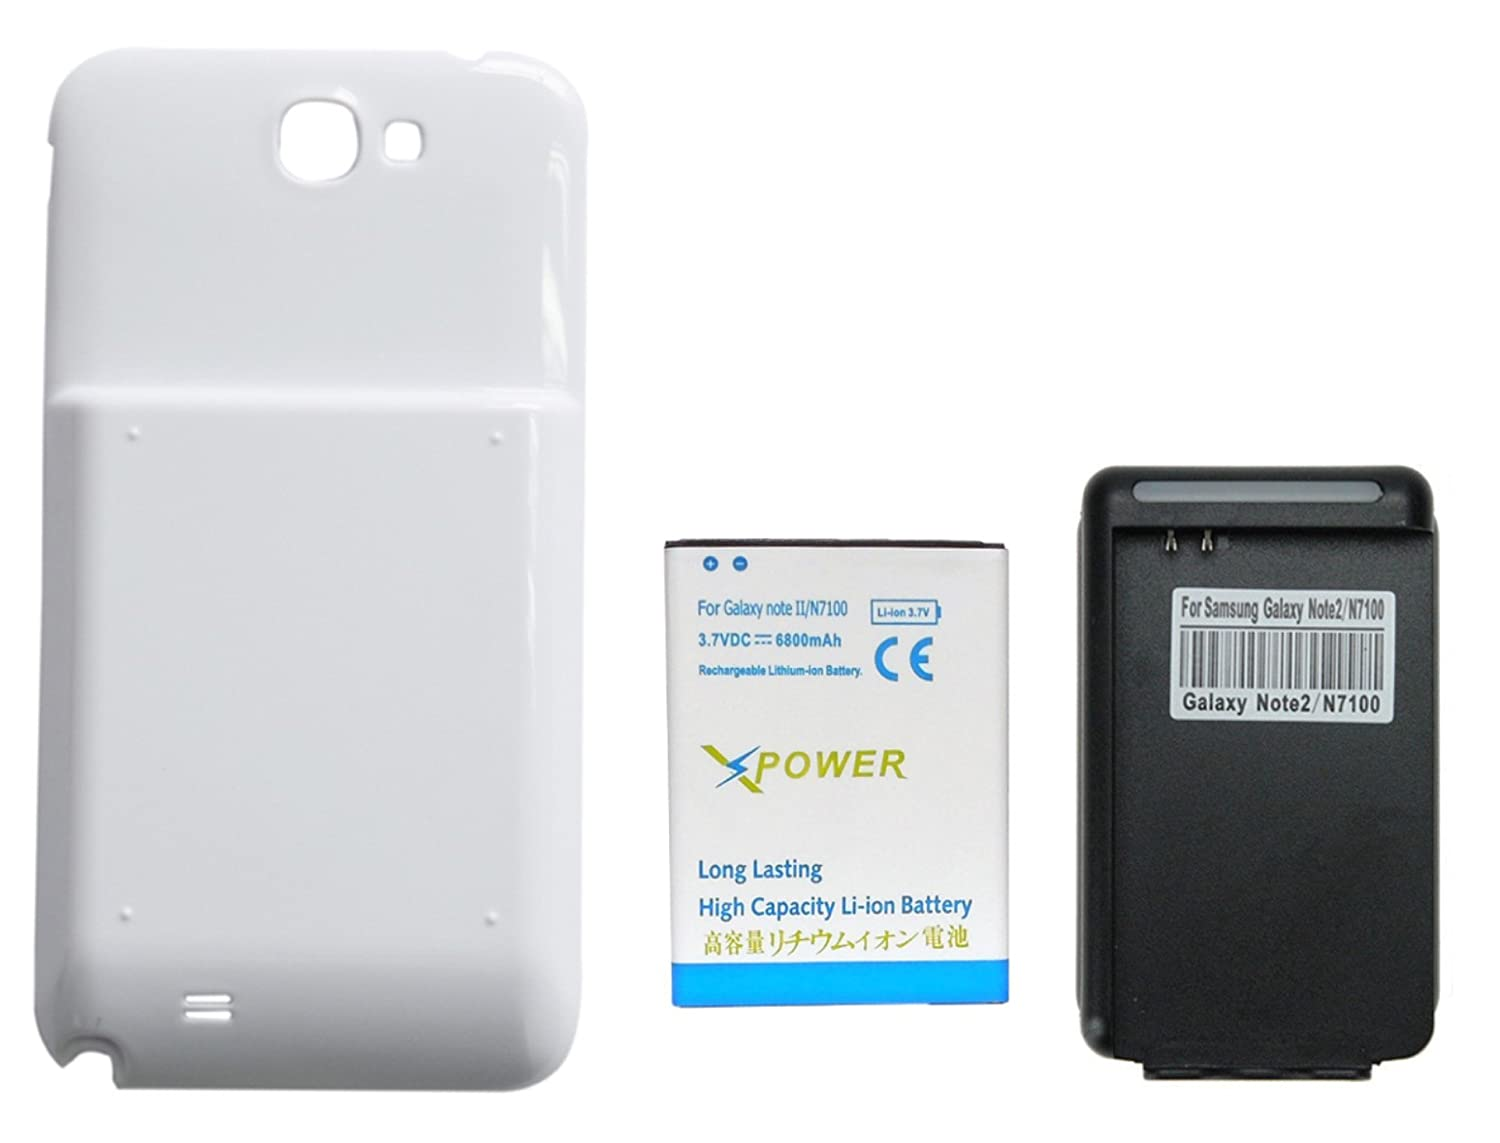 Amazon.com: X-Power 6800mAh Batería Extendida con Carcasa ...